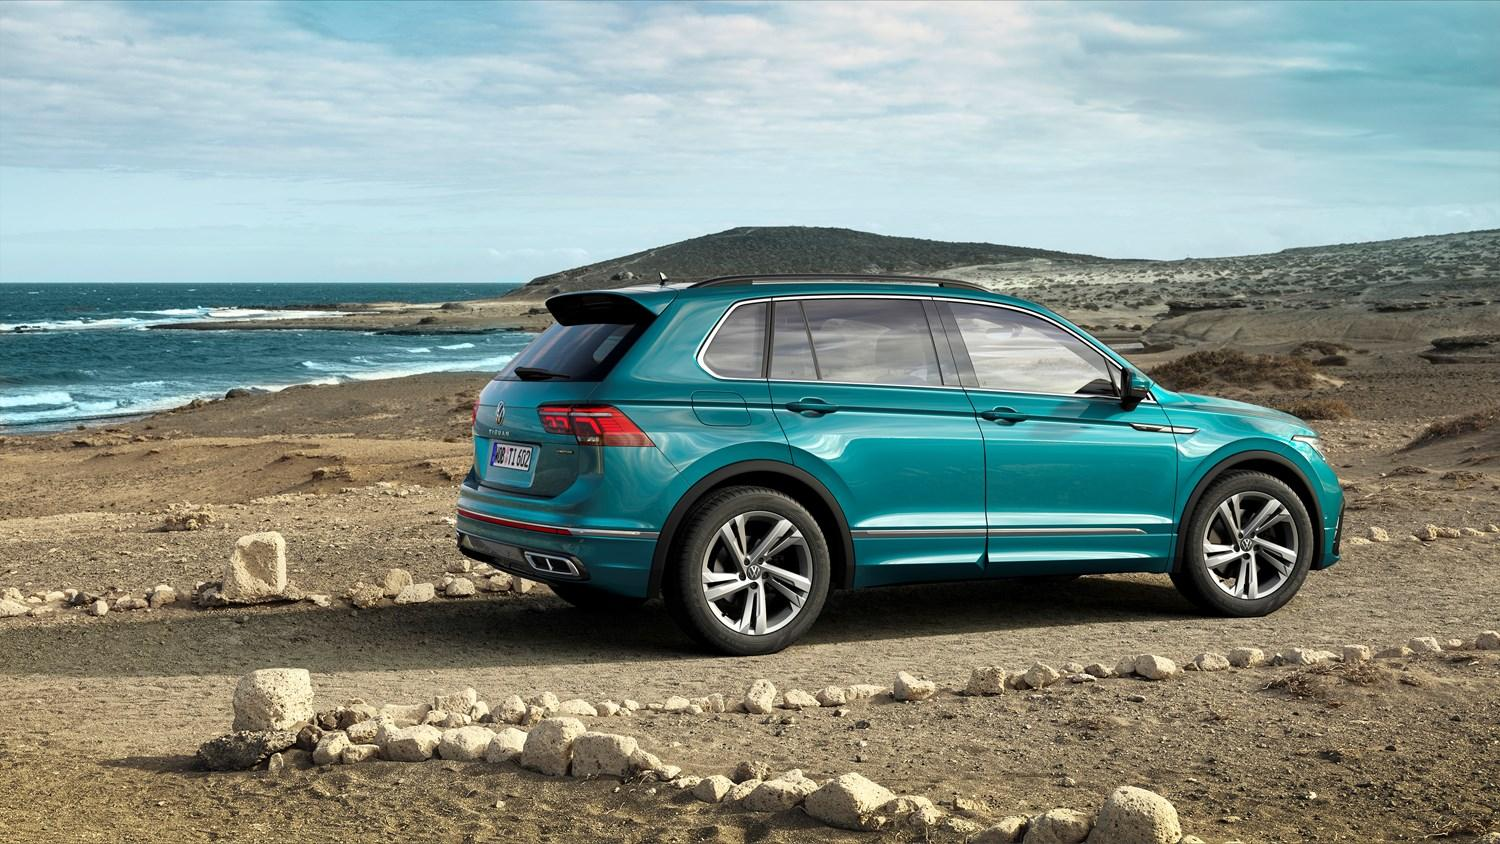 Turquoise Tiguan parked by the sea